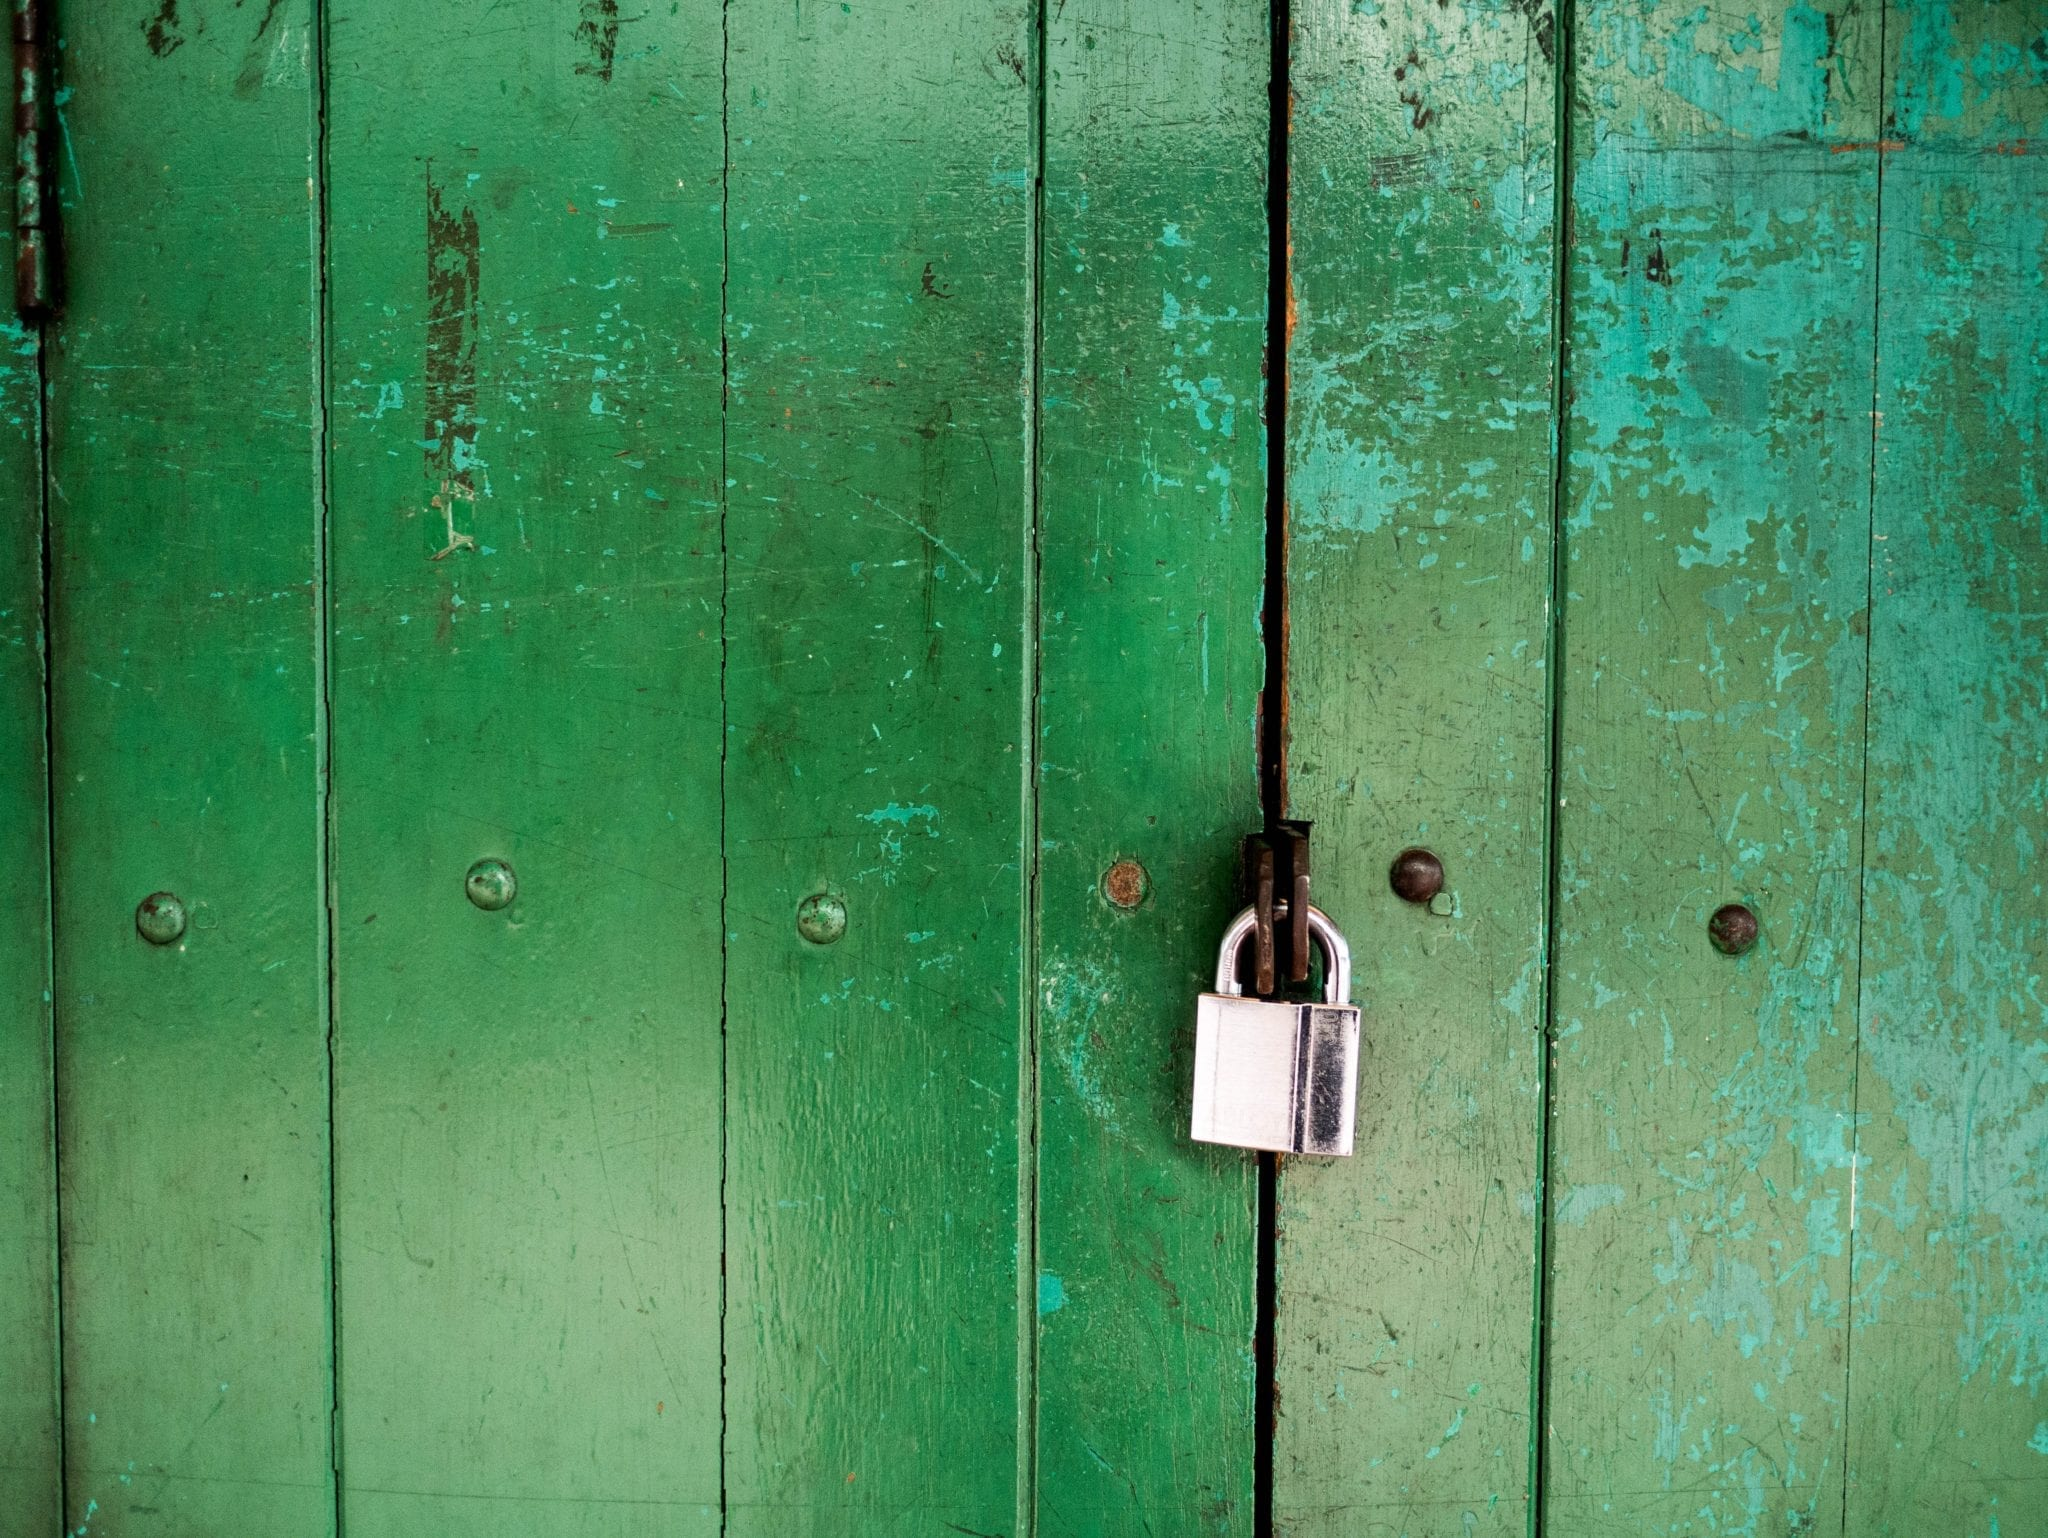 """brute force attack"" represented by padlocked green door"